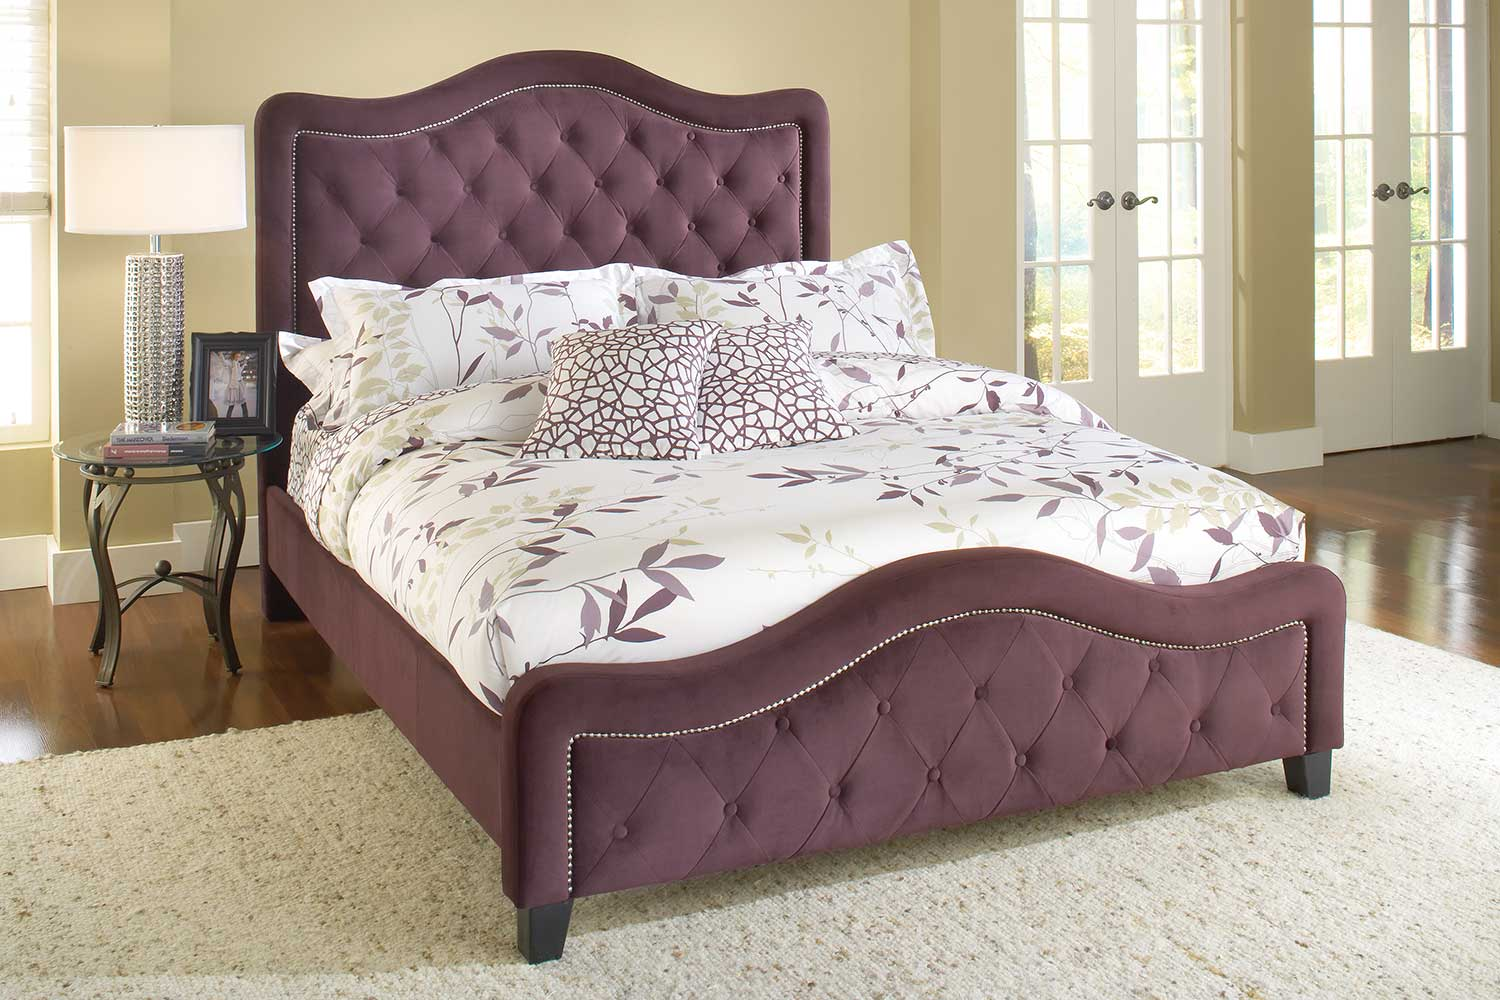 Hillsdale Trieste Tufted Upholstered Bed - Purple